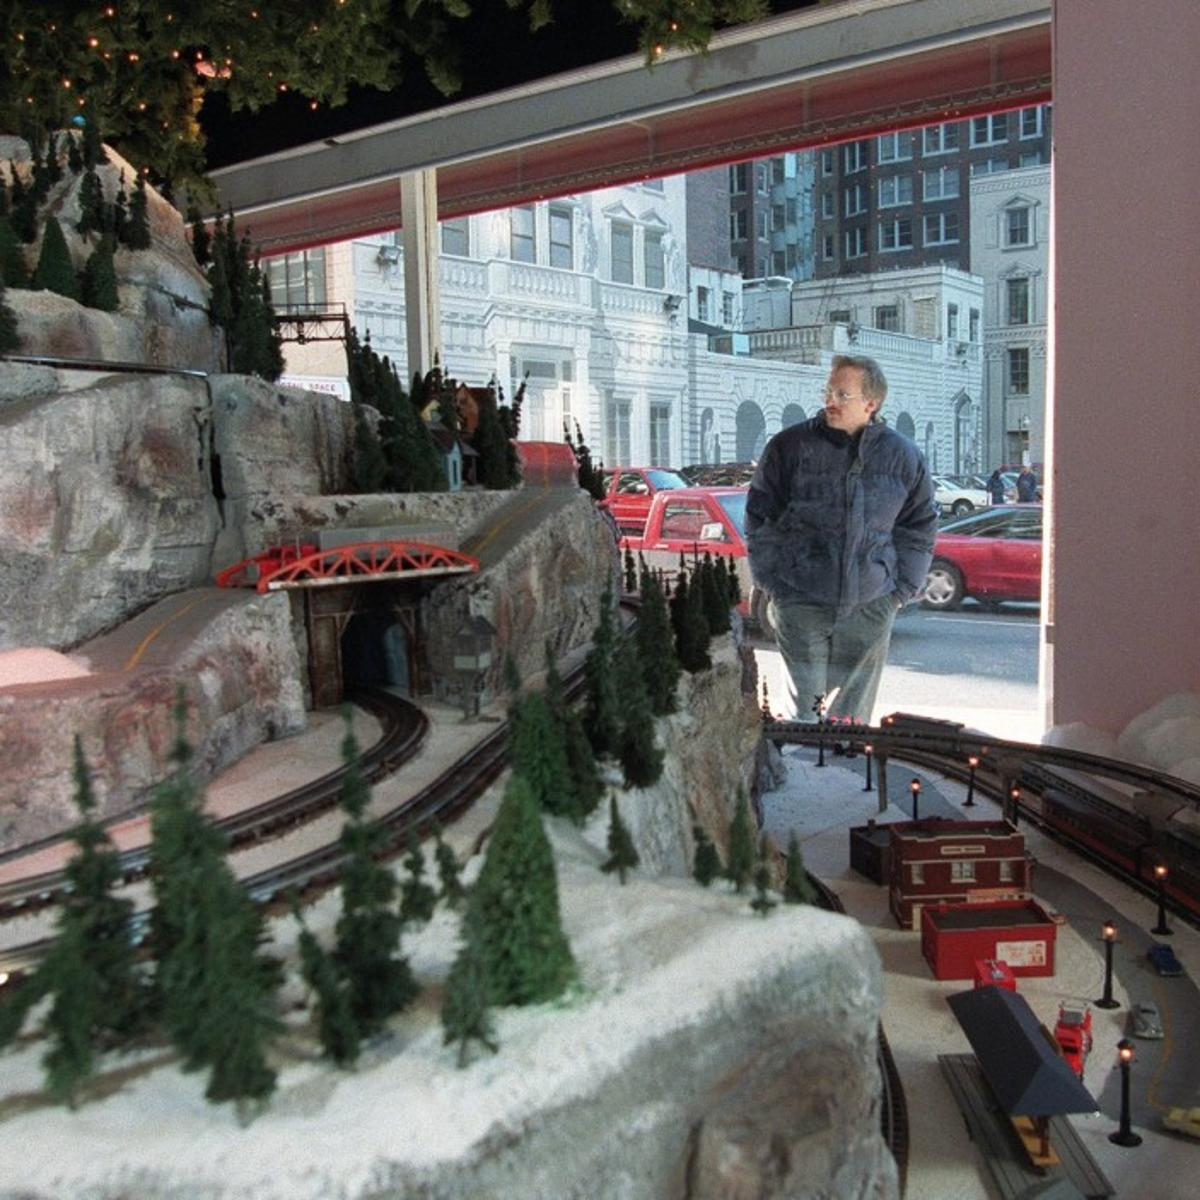 Macy's model-train display in search of